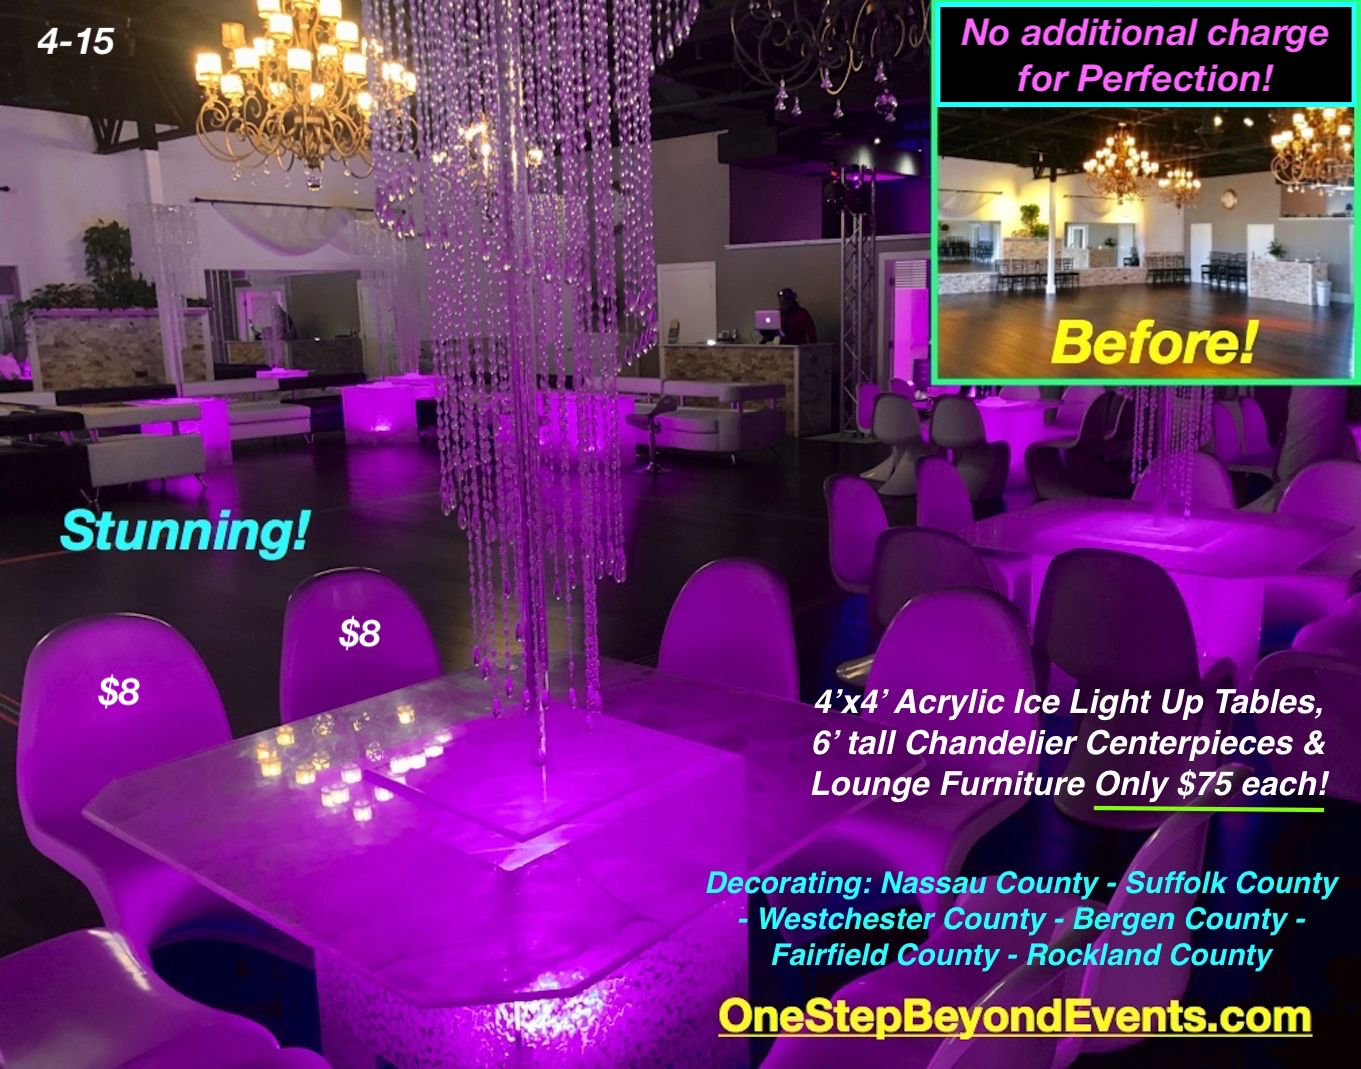 Affordable Party Rentals Lighted Table Led Furniture Rentals South Beach Vegas Style Light Up Decor Elegant In 2020 Glow Table Event Rental Disco Theme Parties